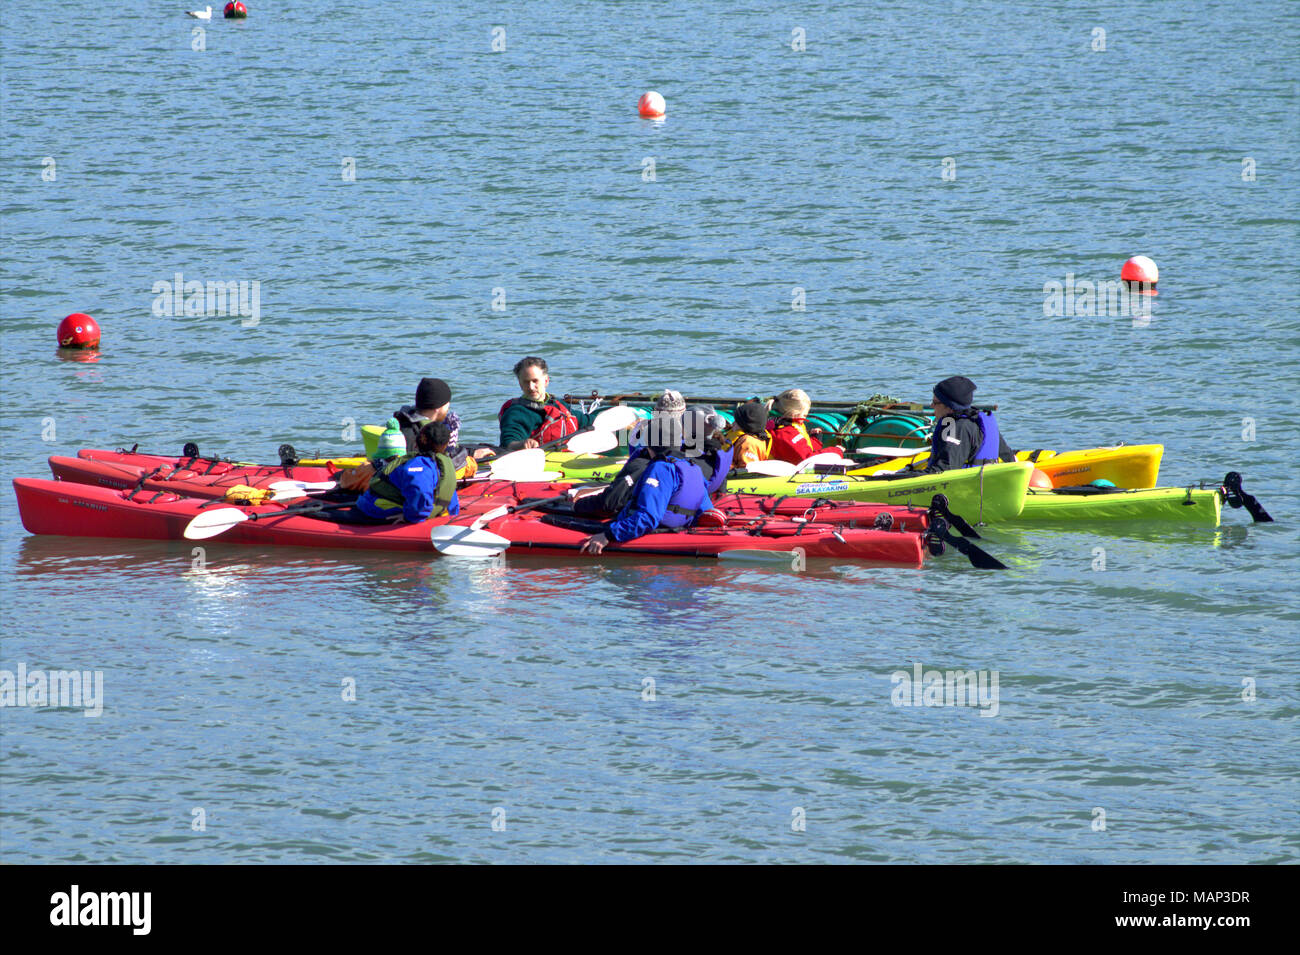 kayakers conoeists rafted up on the sea taking instructions from a water sport tutor in castlehaven harbour, a popular holiday destination.Ireland - Stock Image